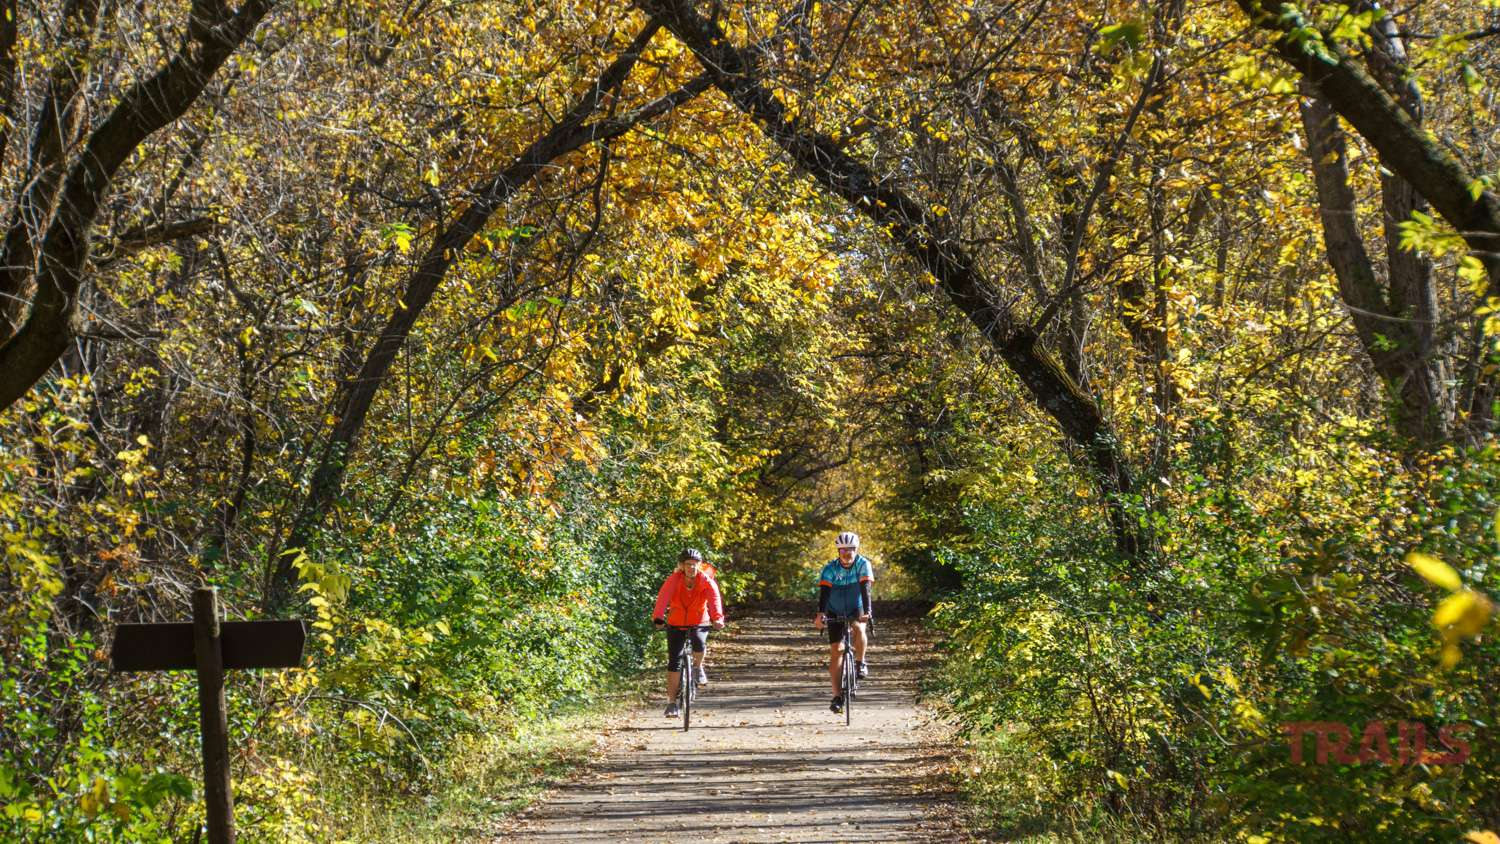 A man and woman ride bikes on a trail